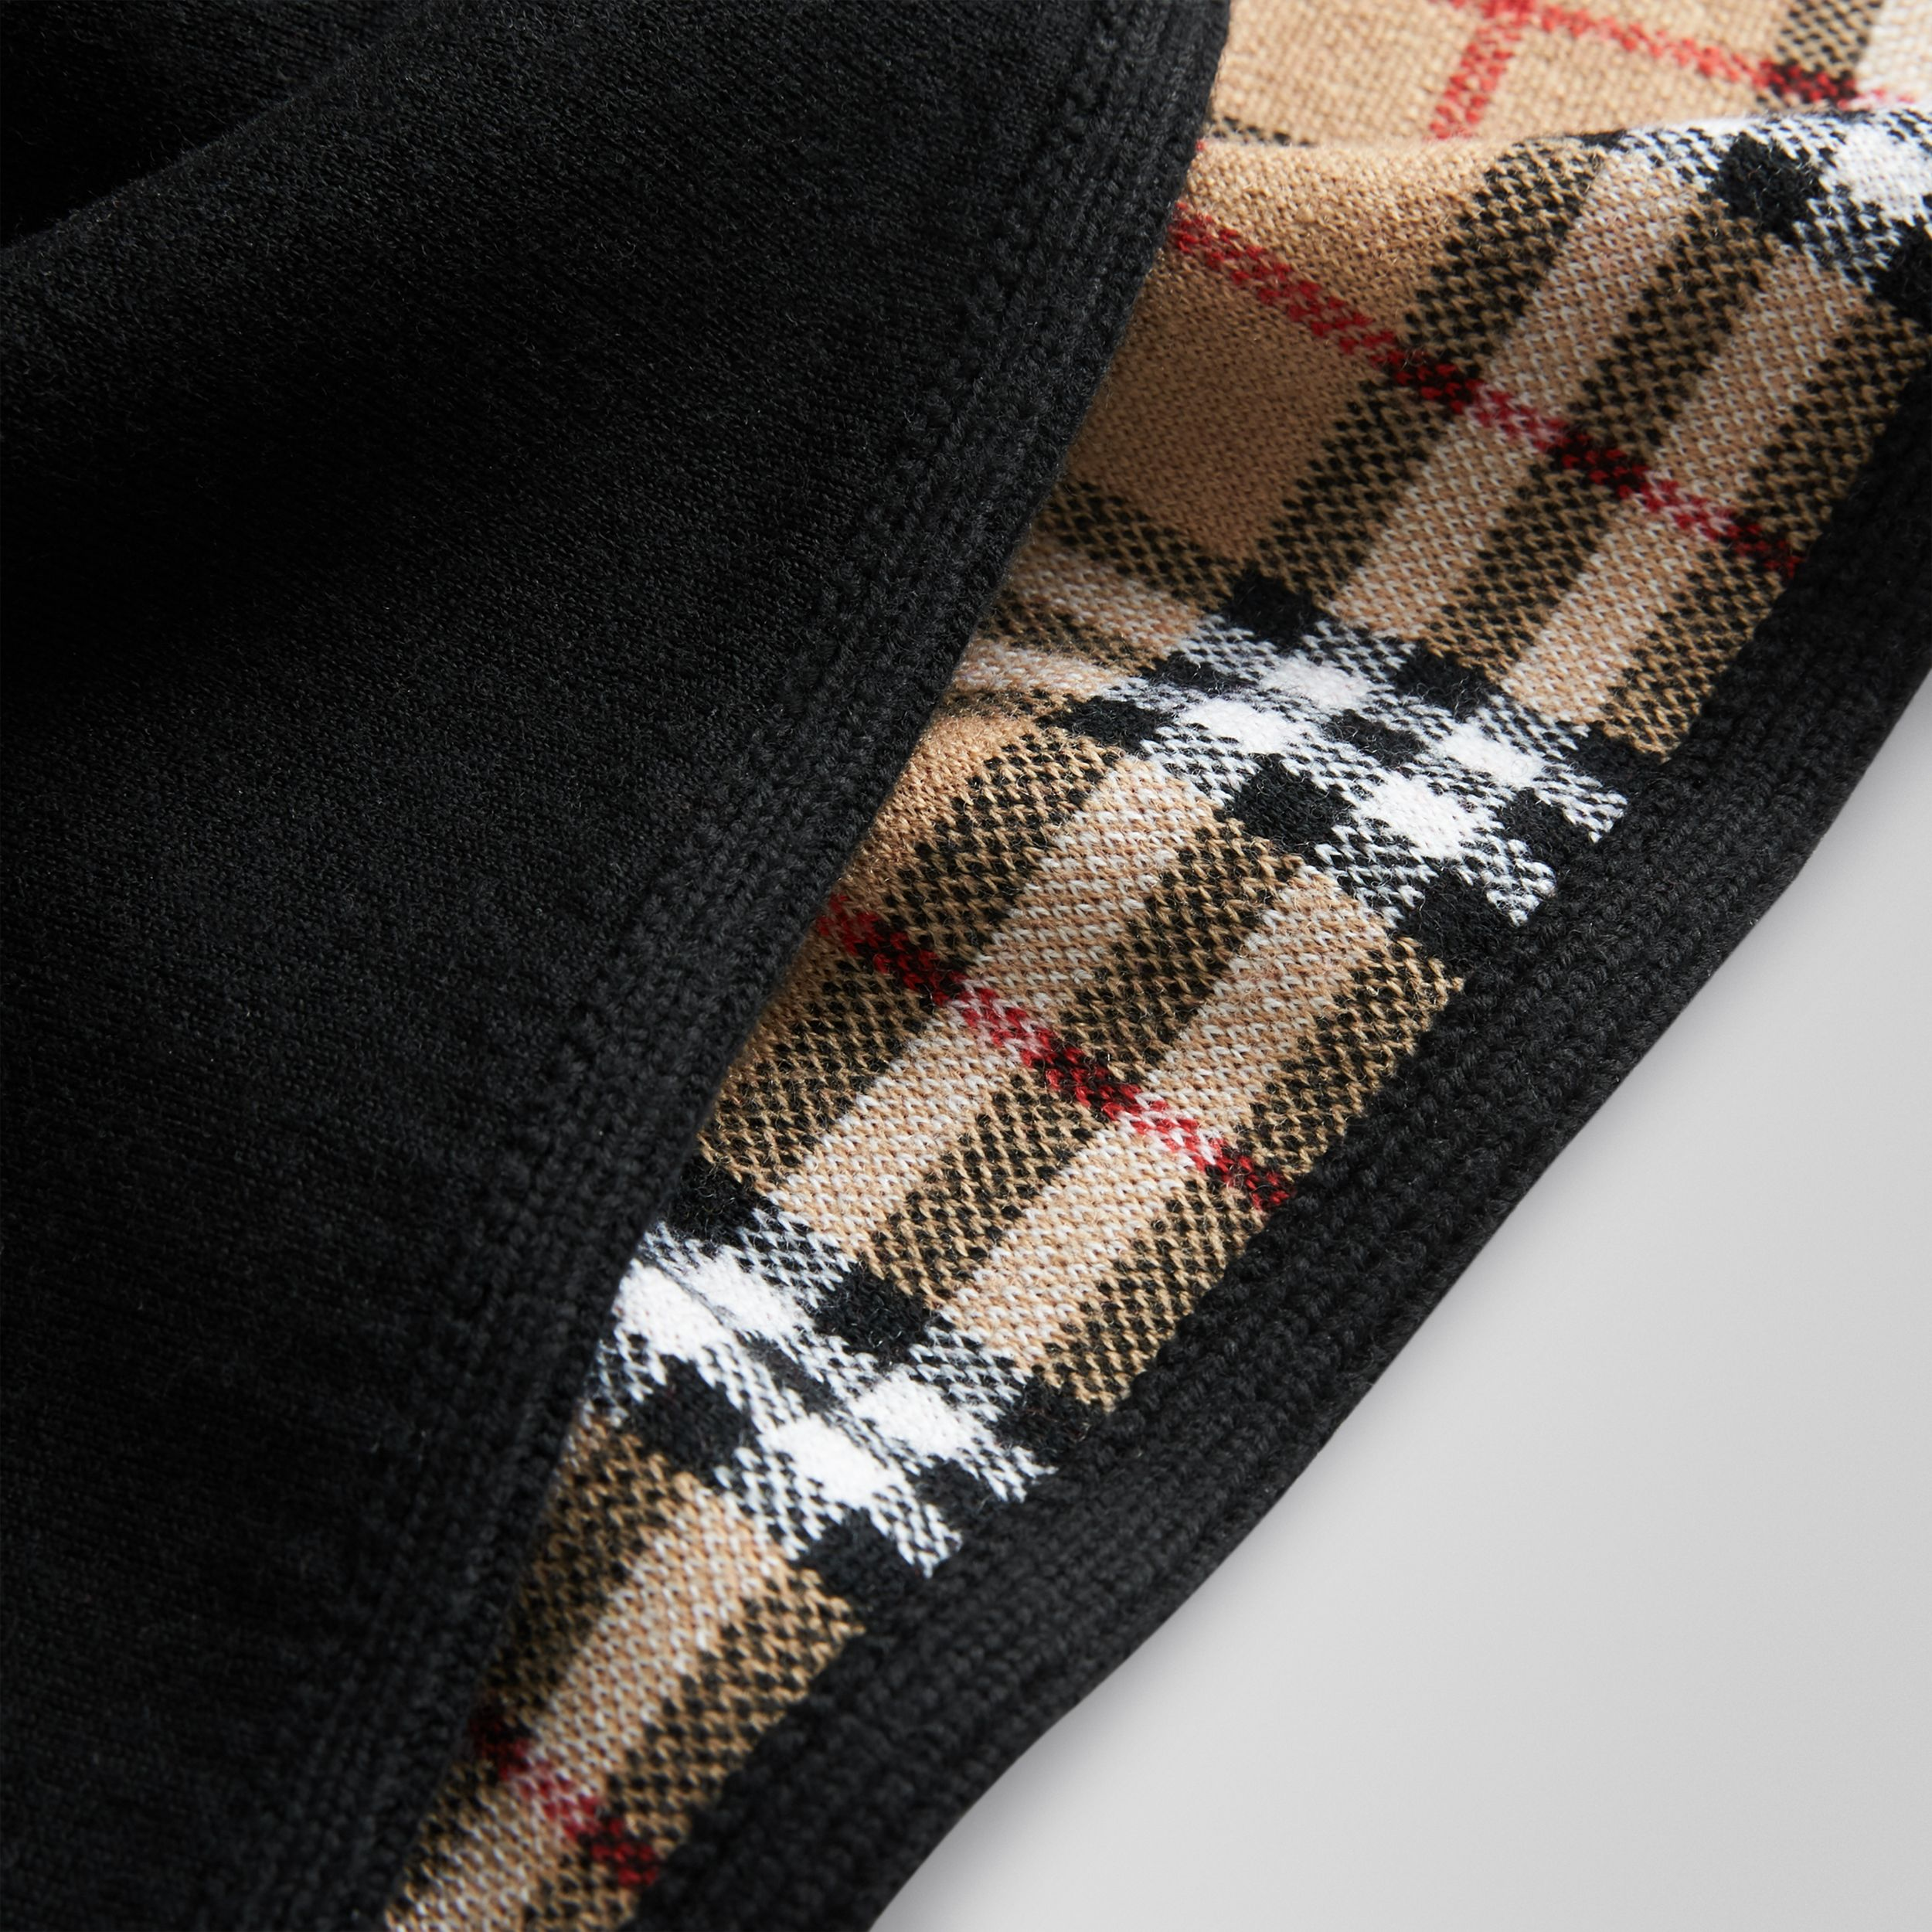 Reversible Vintage Check Merino Wool Jacquard Poncho in Black | Burberry Singapore - 2